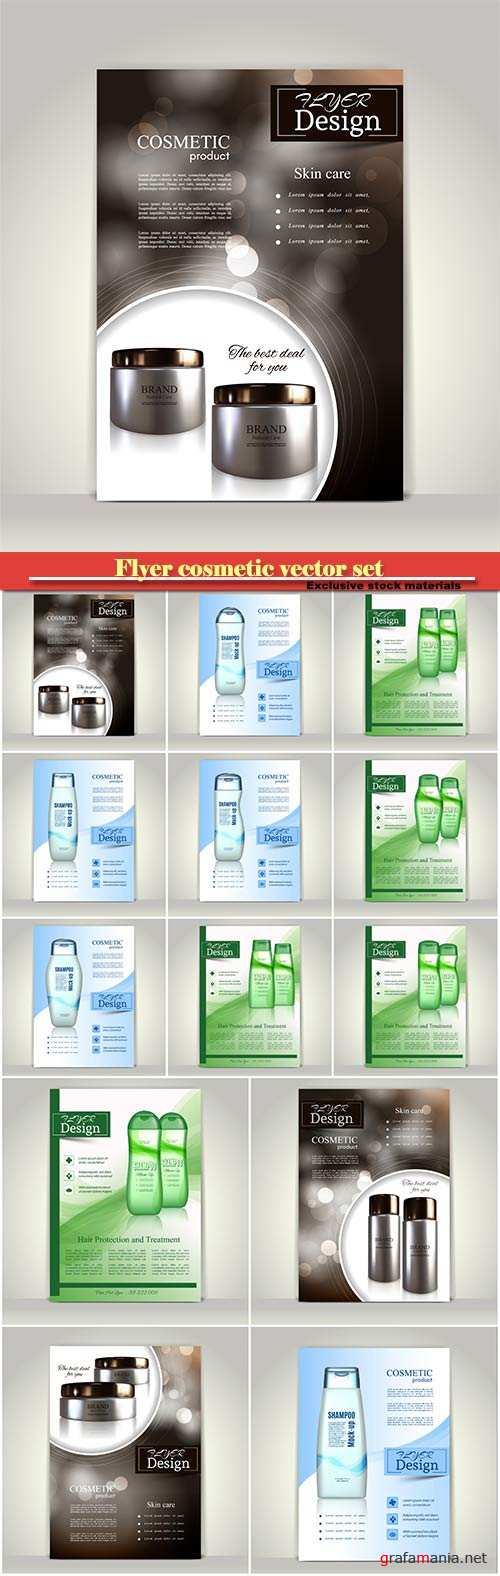 Flyer cosmetic vector set, brochure or magazine cover template